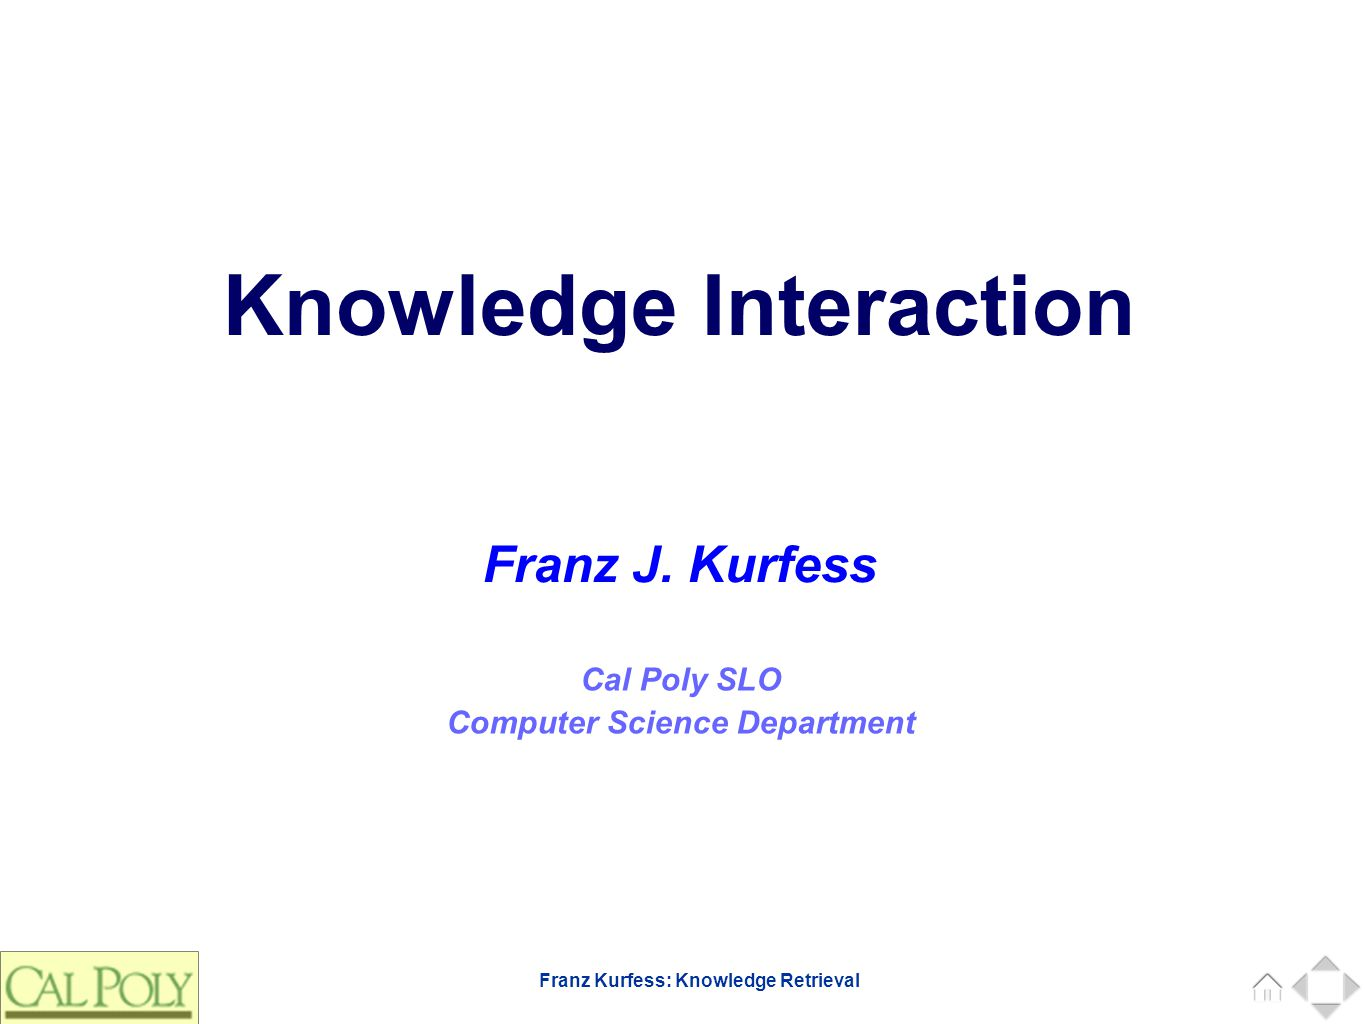 22 Franz Kurfess: Knowledge Interaction Thought Control ❖ sensors measure the activities in the brain ❖ electrical ❖ chemical ❖ actuators inject signals into the brain ❖ electrical ❖ chemical 22 http://www.nature.com/news/2004/041013/images/brainchip.jpg